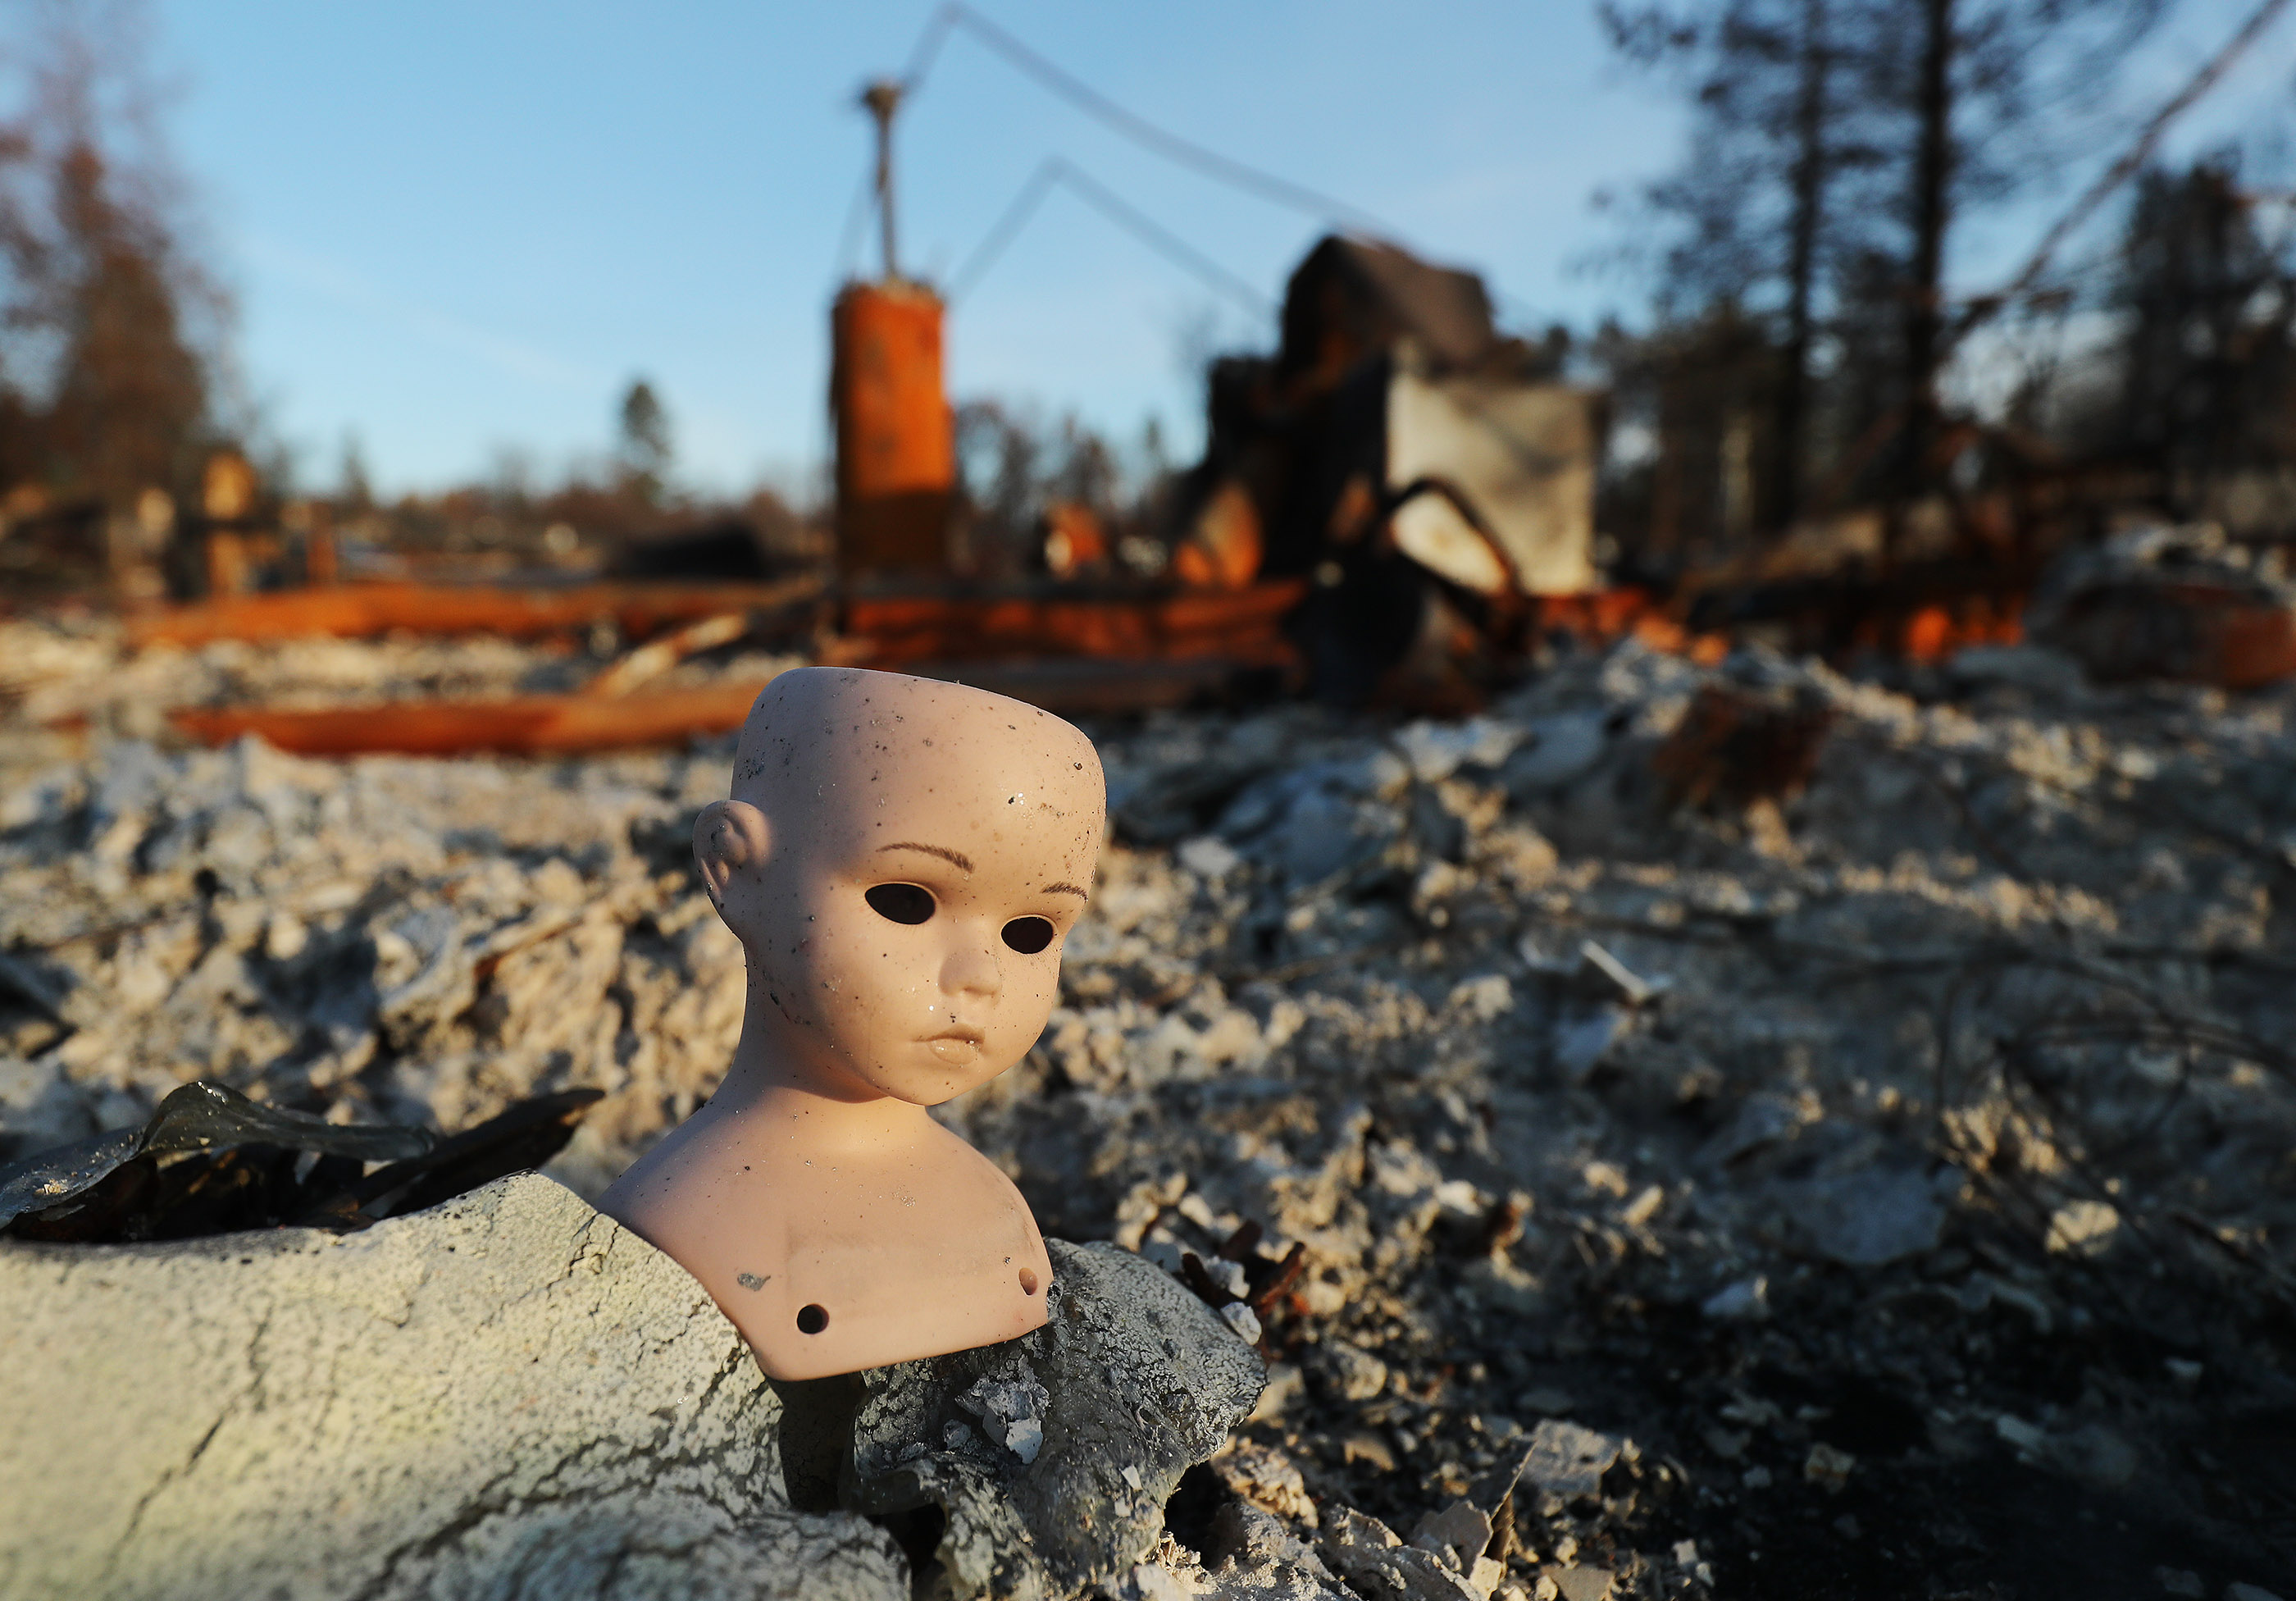 A doll remains in the destruction in Paradise, California, on Saturday, Jan. 12, 2019, two months after the Camp Fire destroyed more than 18,000 homes and businesses.